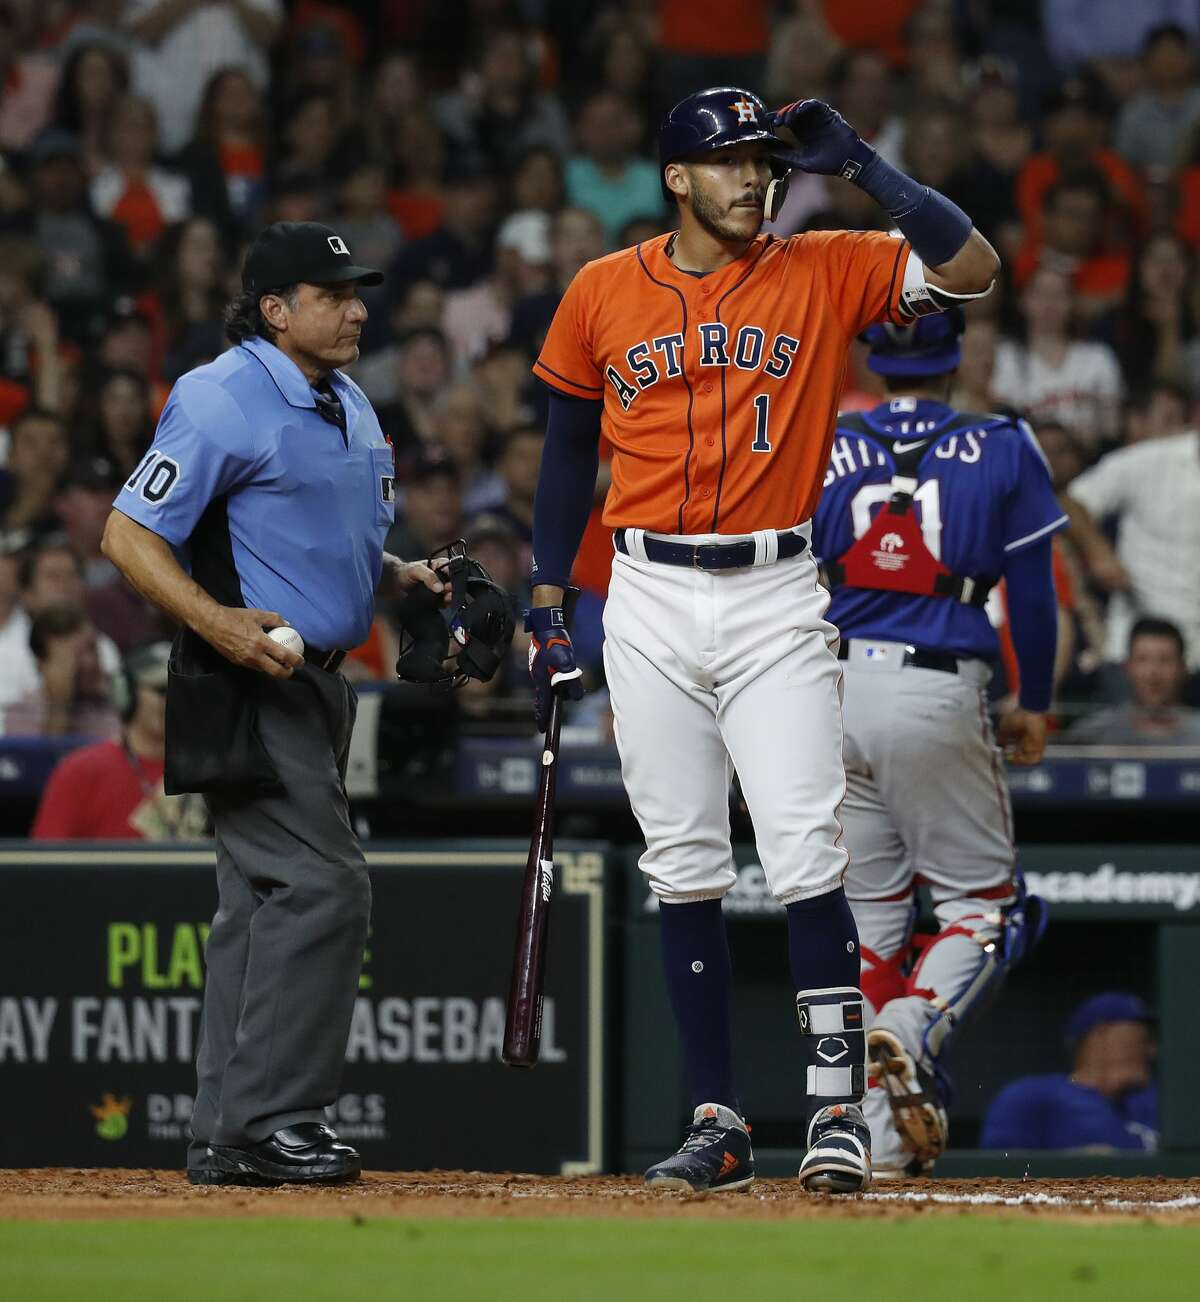 Houston Astros Carlos Correa (1) reacts after striking out during the seventh inning of an MLB game at Minute Maid Park, Friday, April 13, 2018, in Houston. ( Karen Warren / Houston Chronicle )